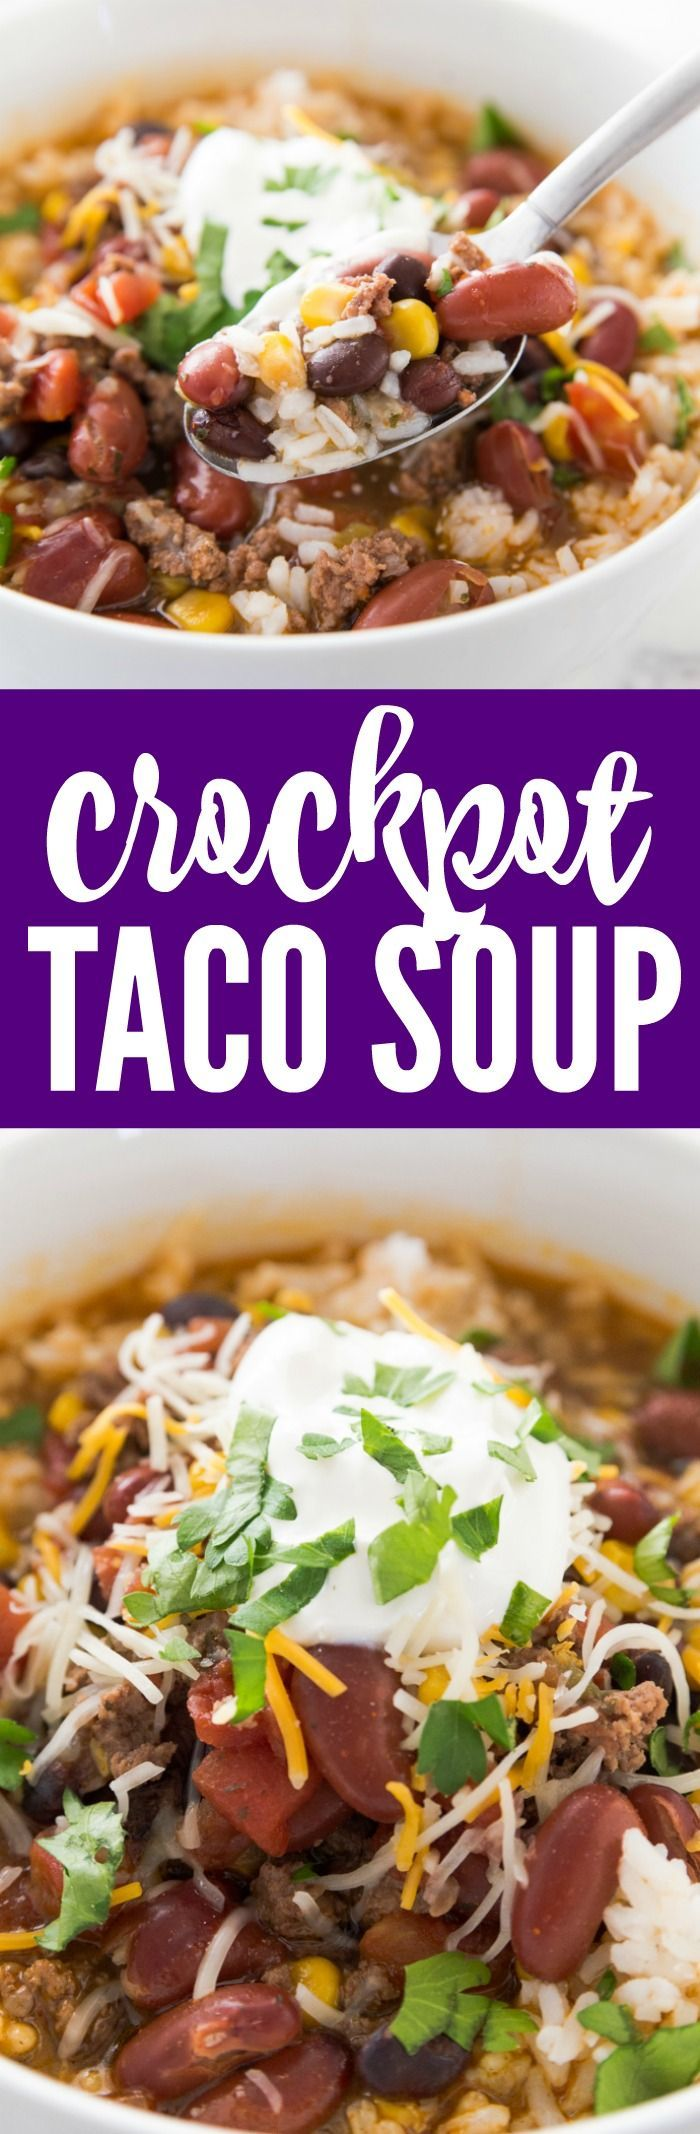 Easy Crockpot Taco Soup Recipe! This 7 Can Slow Cooker Dump Soup is an easy Weekly Dinner Plan idea or freezer meal for kids or a crowd everyone will LOVE! #passion4savings #dinnerrecipes #dinnerideas